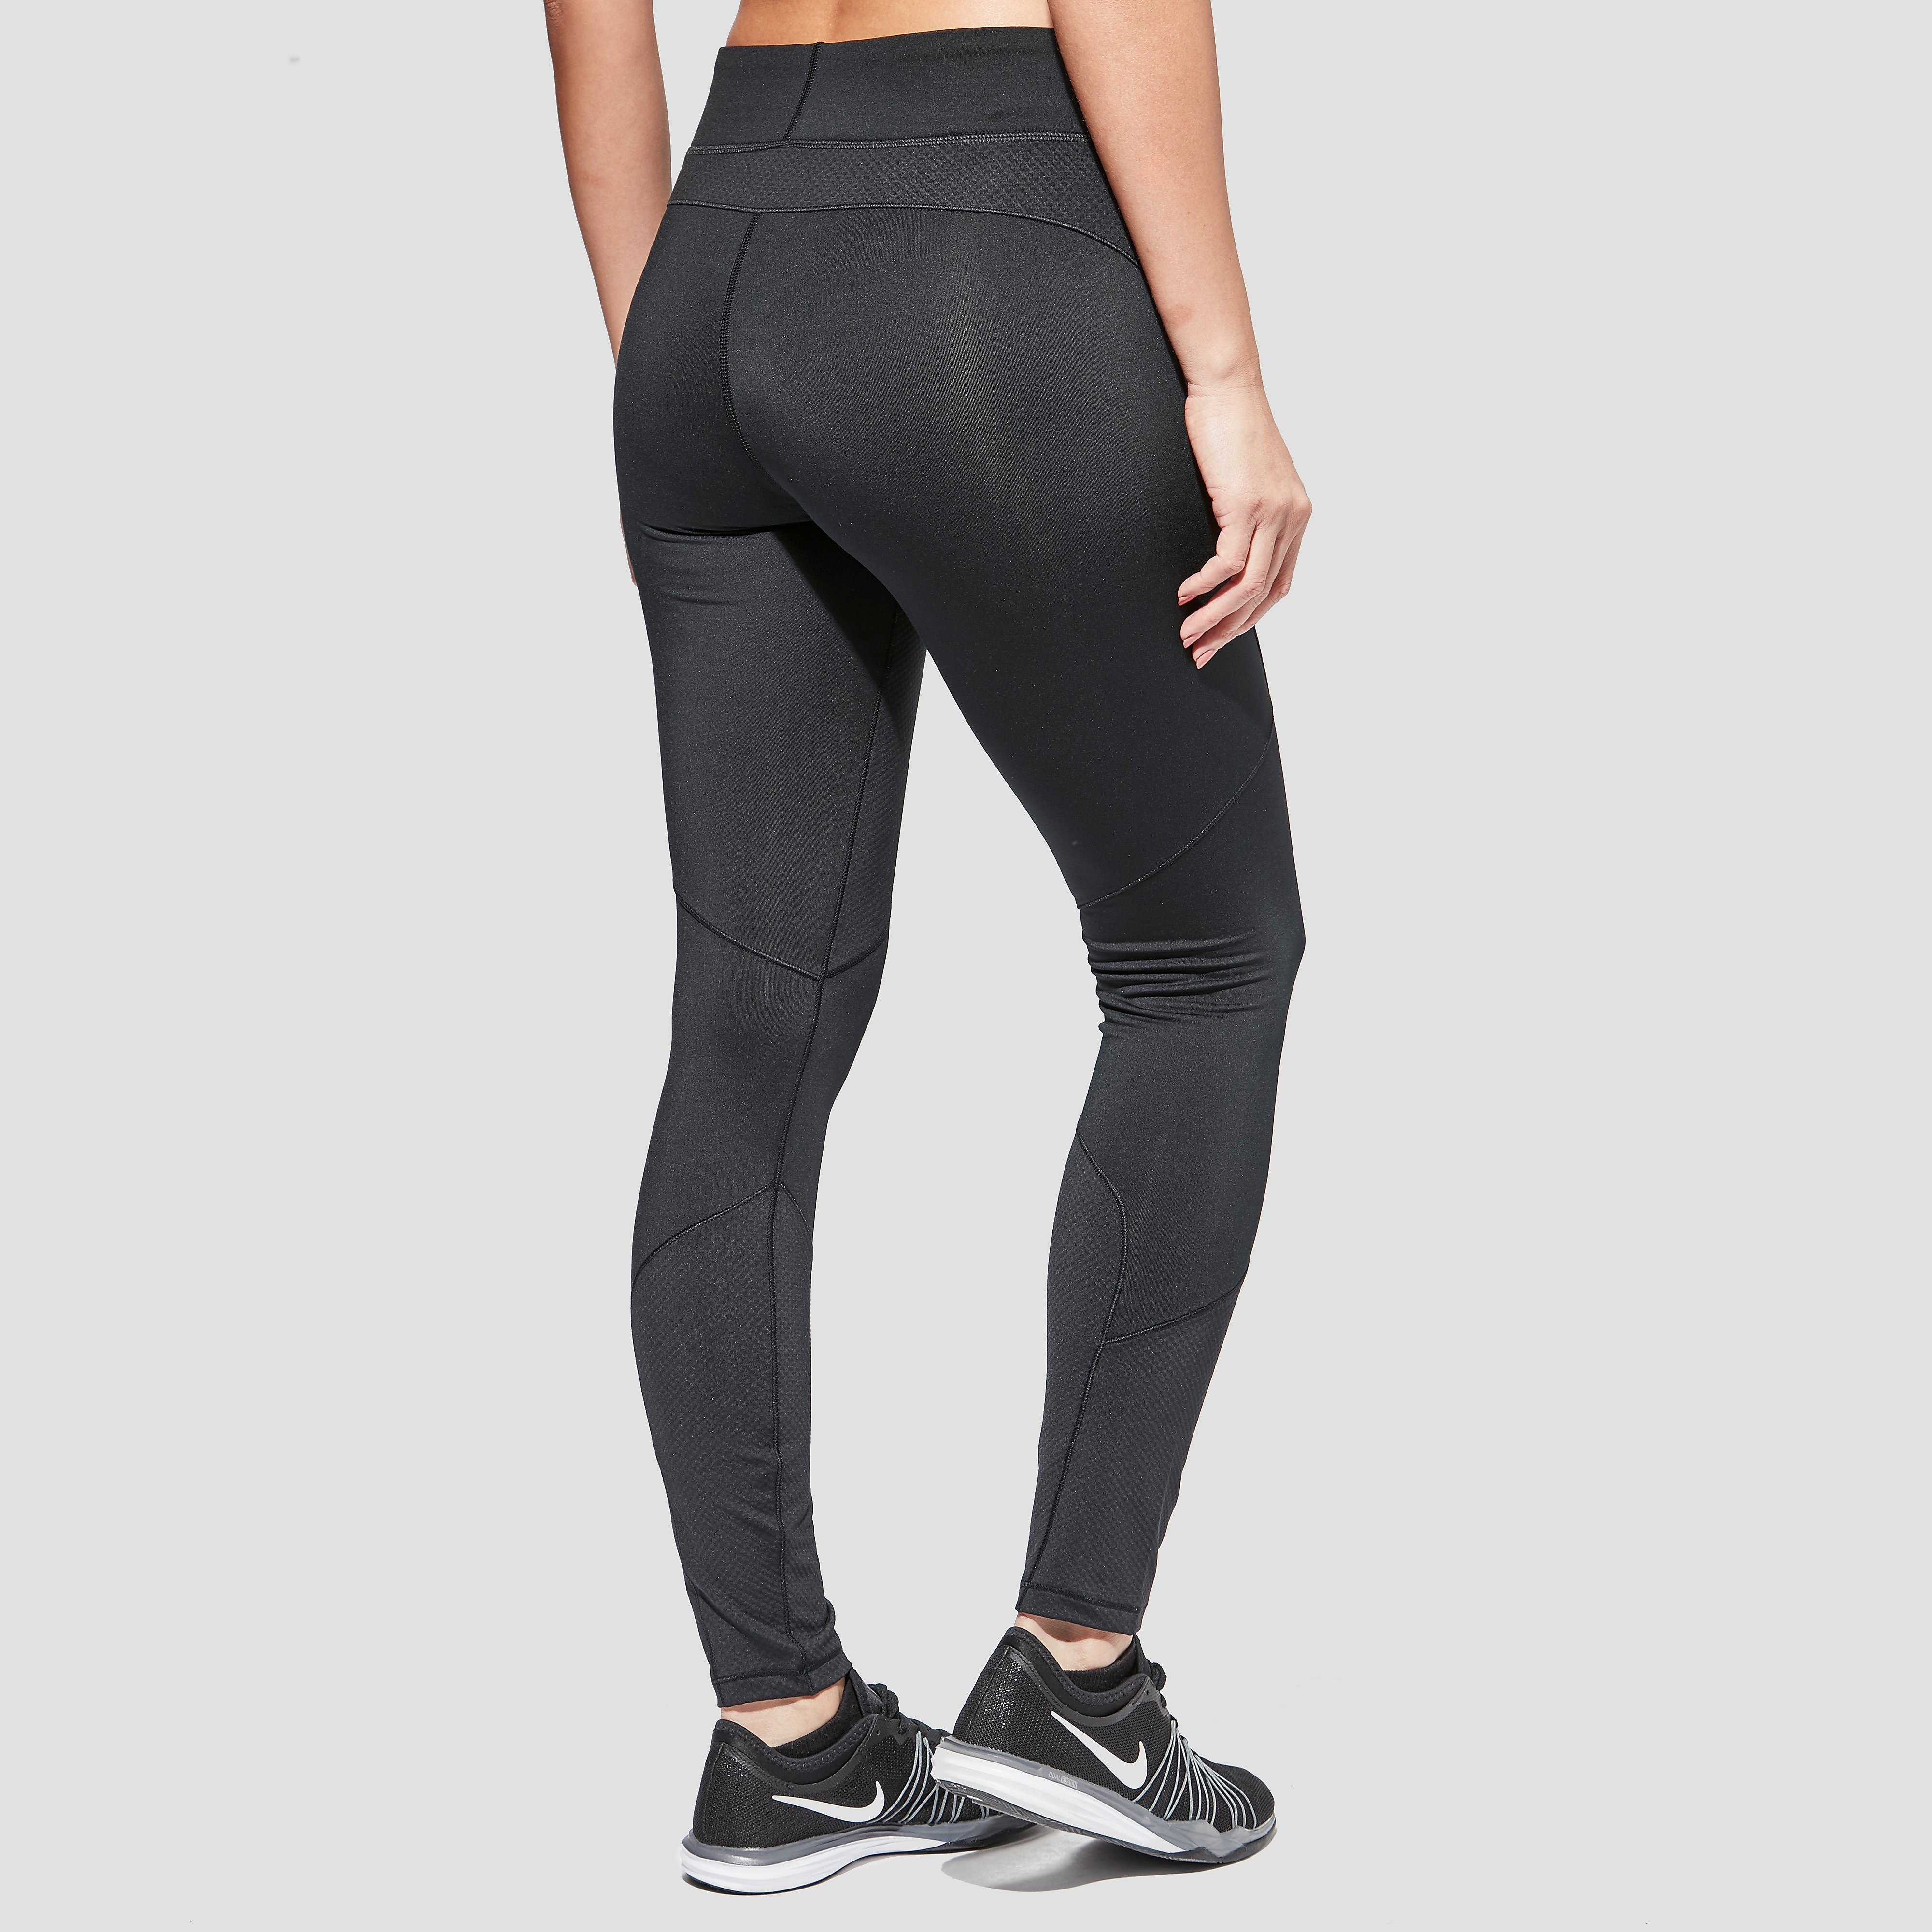 Under Armour ColdGear Reactor Women's Leggings